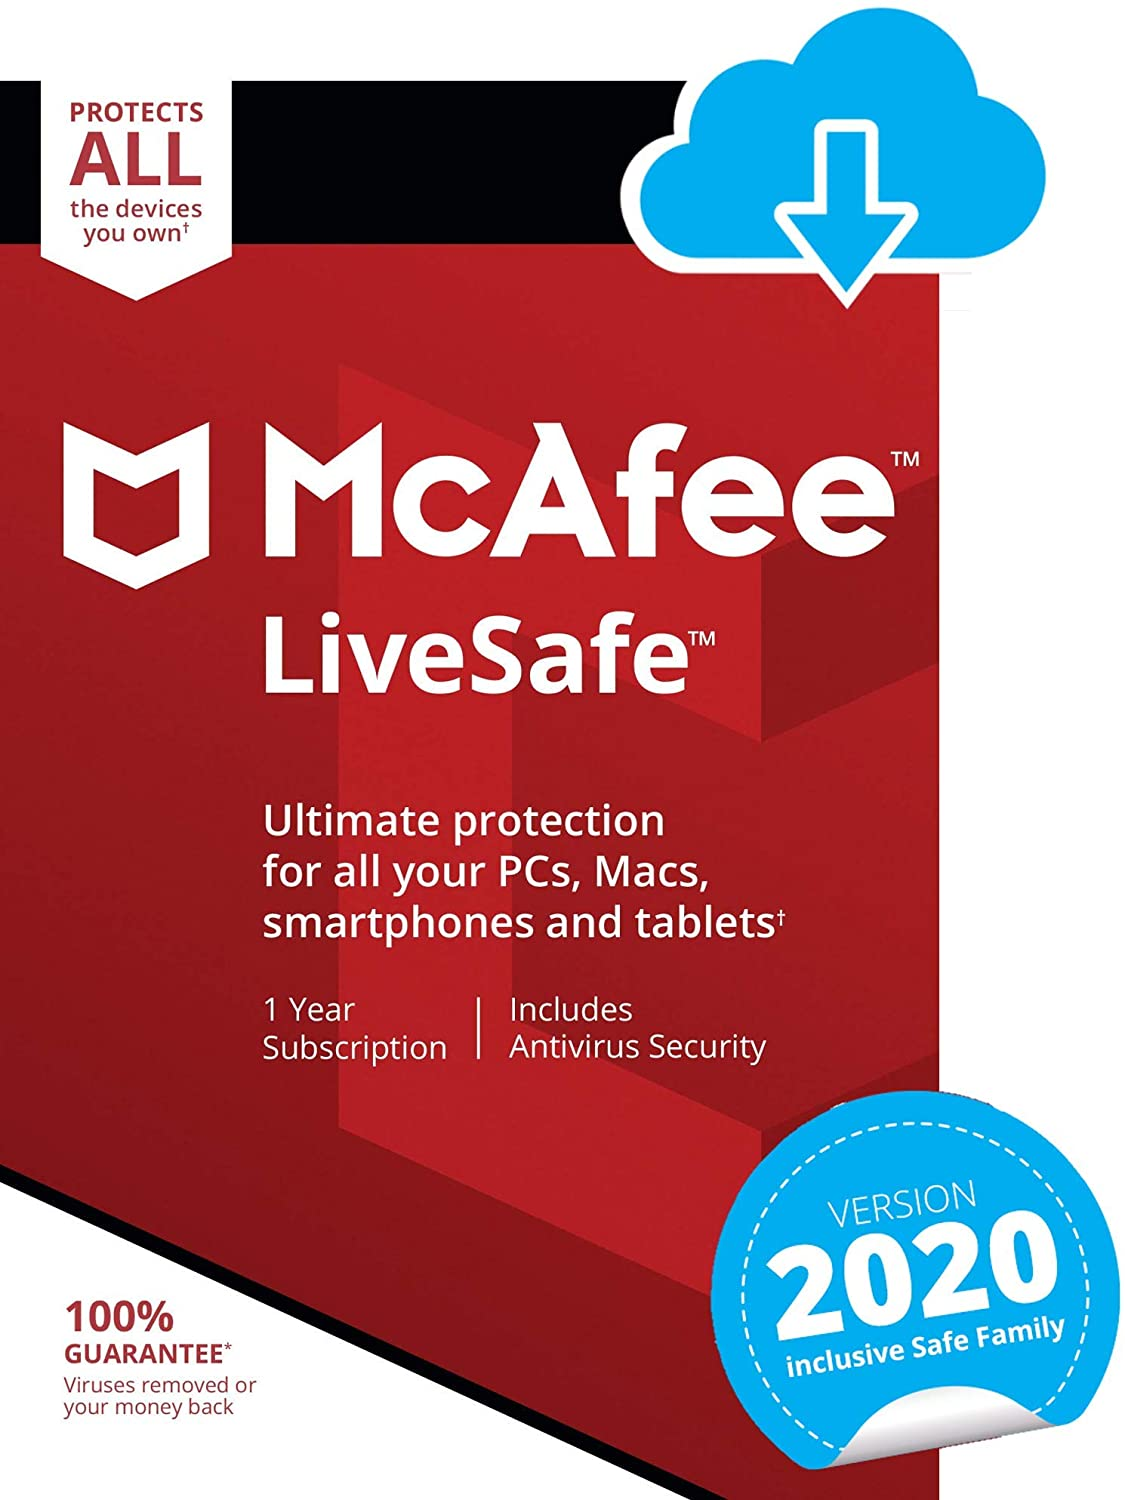 MCAFEE  LIVESAFE 2020 FOR 1 YEAR